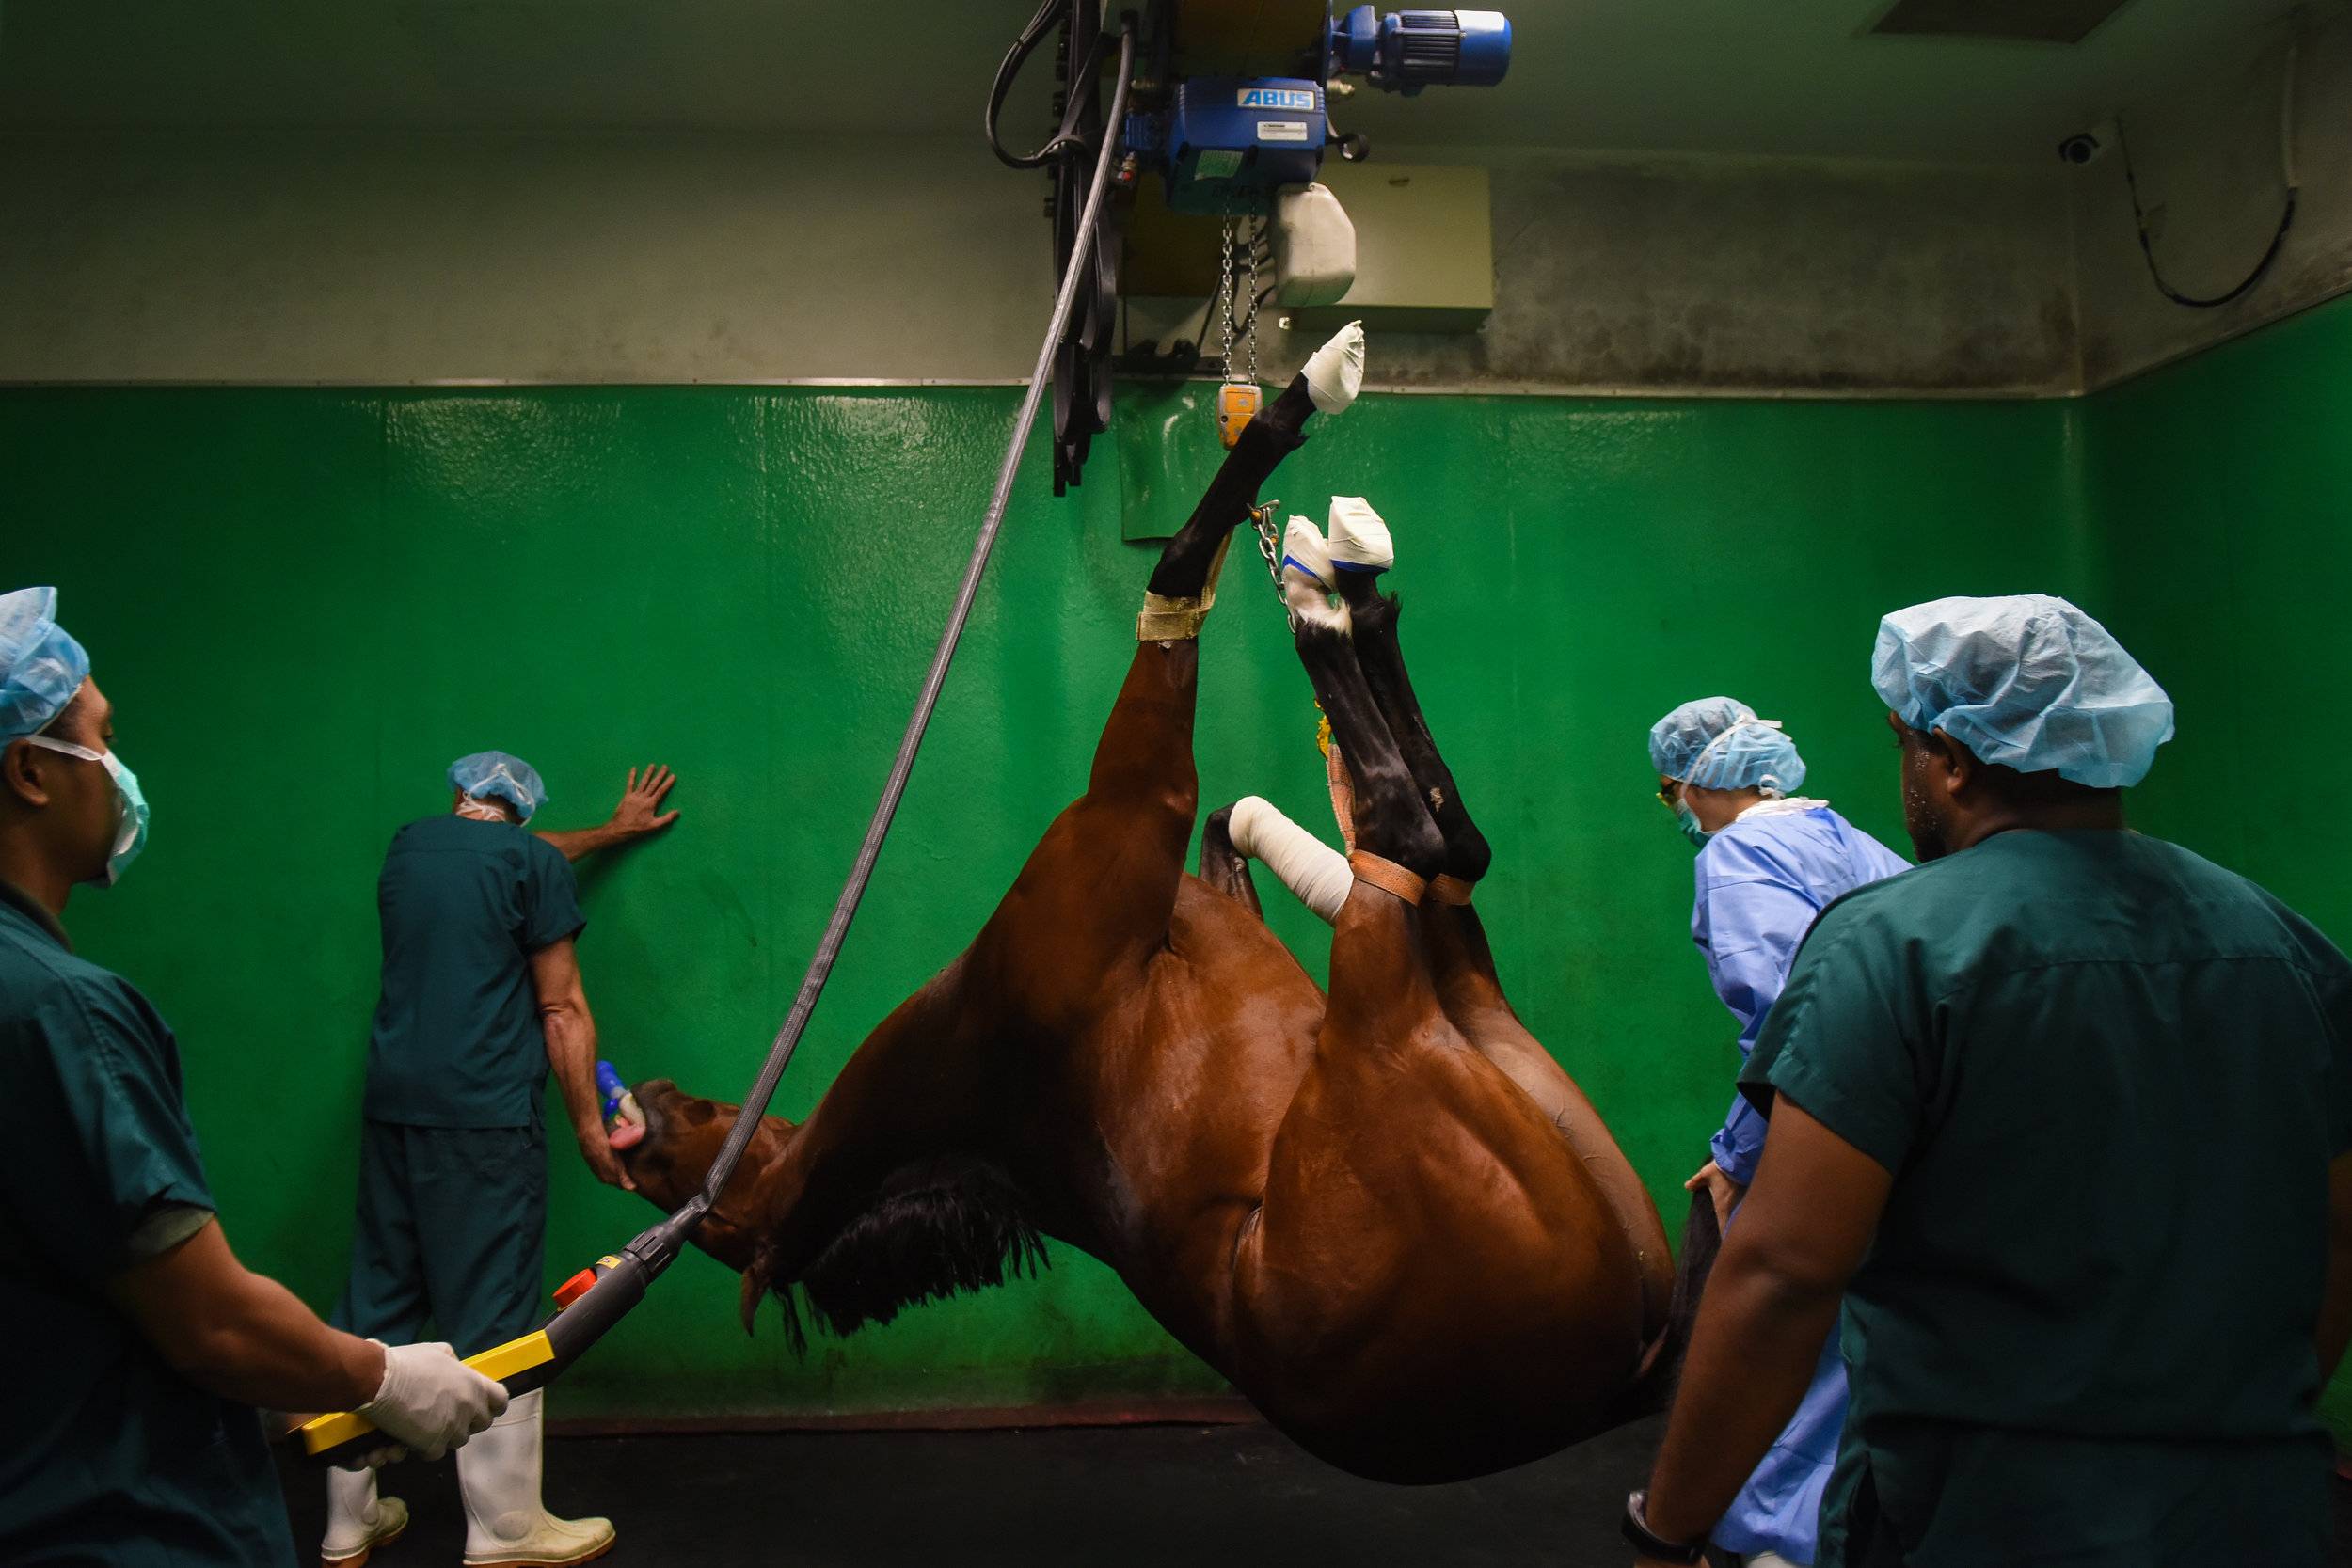 Senator, a four-year-old racehorse being hoisted back to recovery room of the Singapore Turf Club's vet hospital after successful arthroscopic surgery. The general anaesthesia takes about 15 minutes to wear off after the surgery and the medical team will monitor the horse via a surveillance camera until it regains consciousness and can be taken back to the stables to rest.